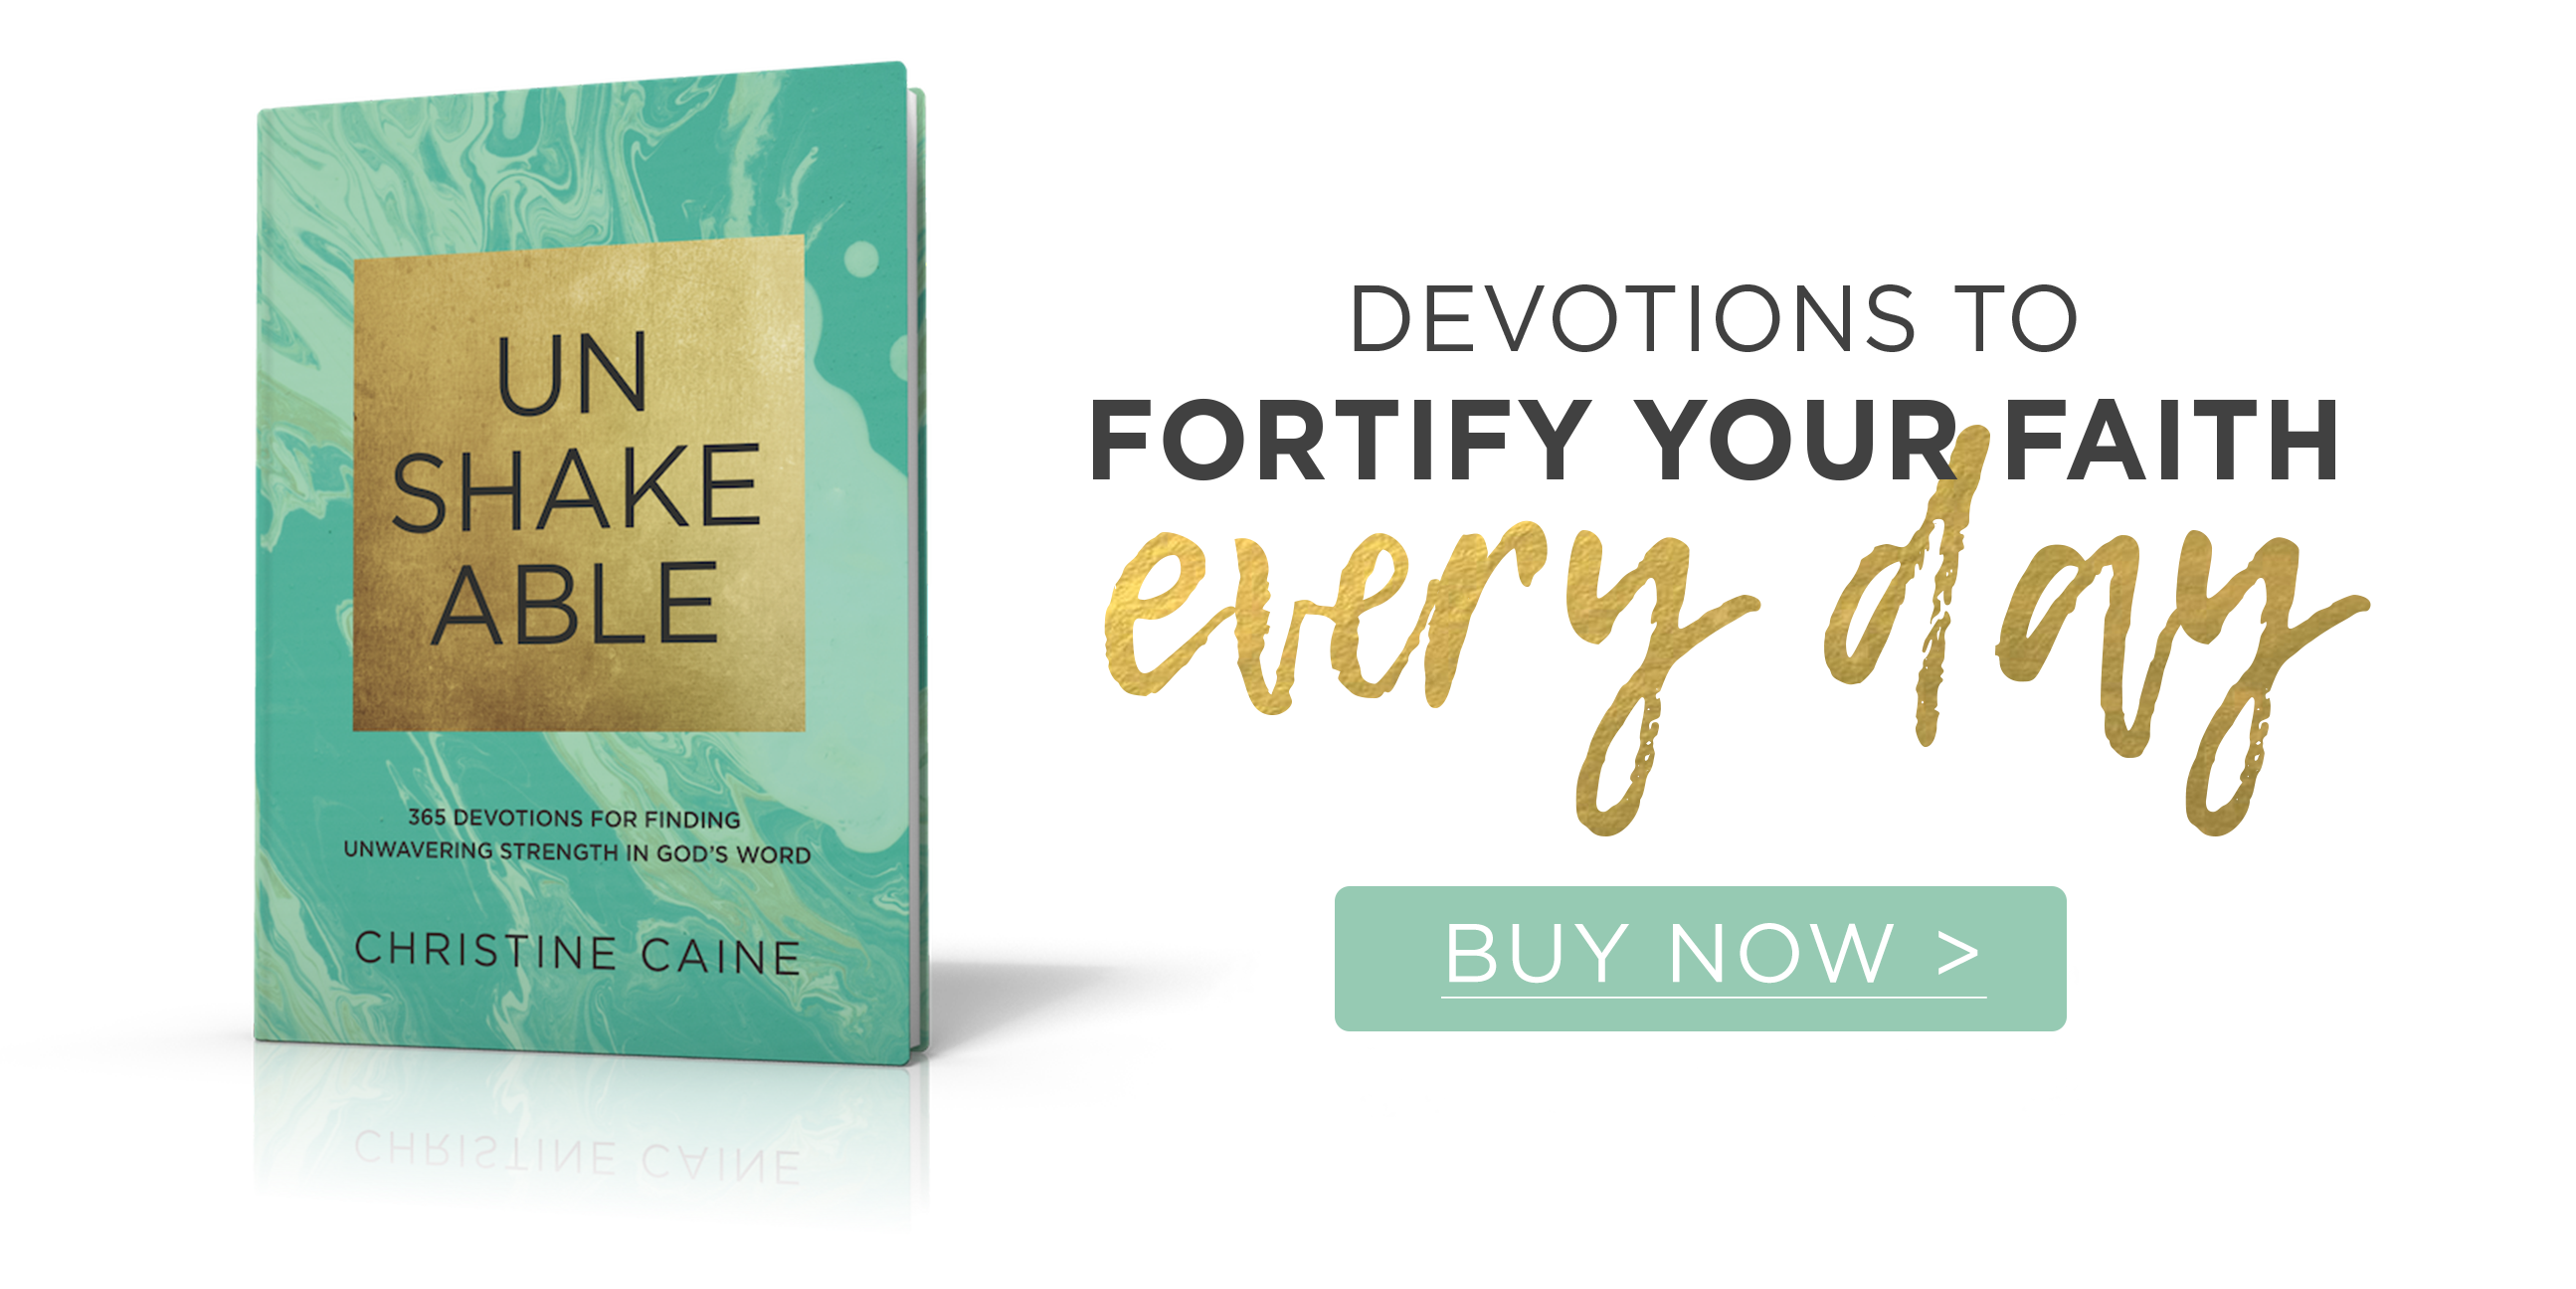 Unshakeable by Christine Caine: Devotions to fortify your faith every day. Buy Now >